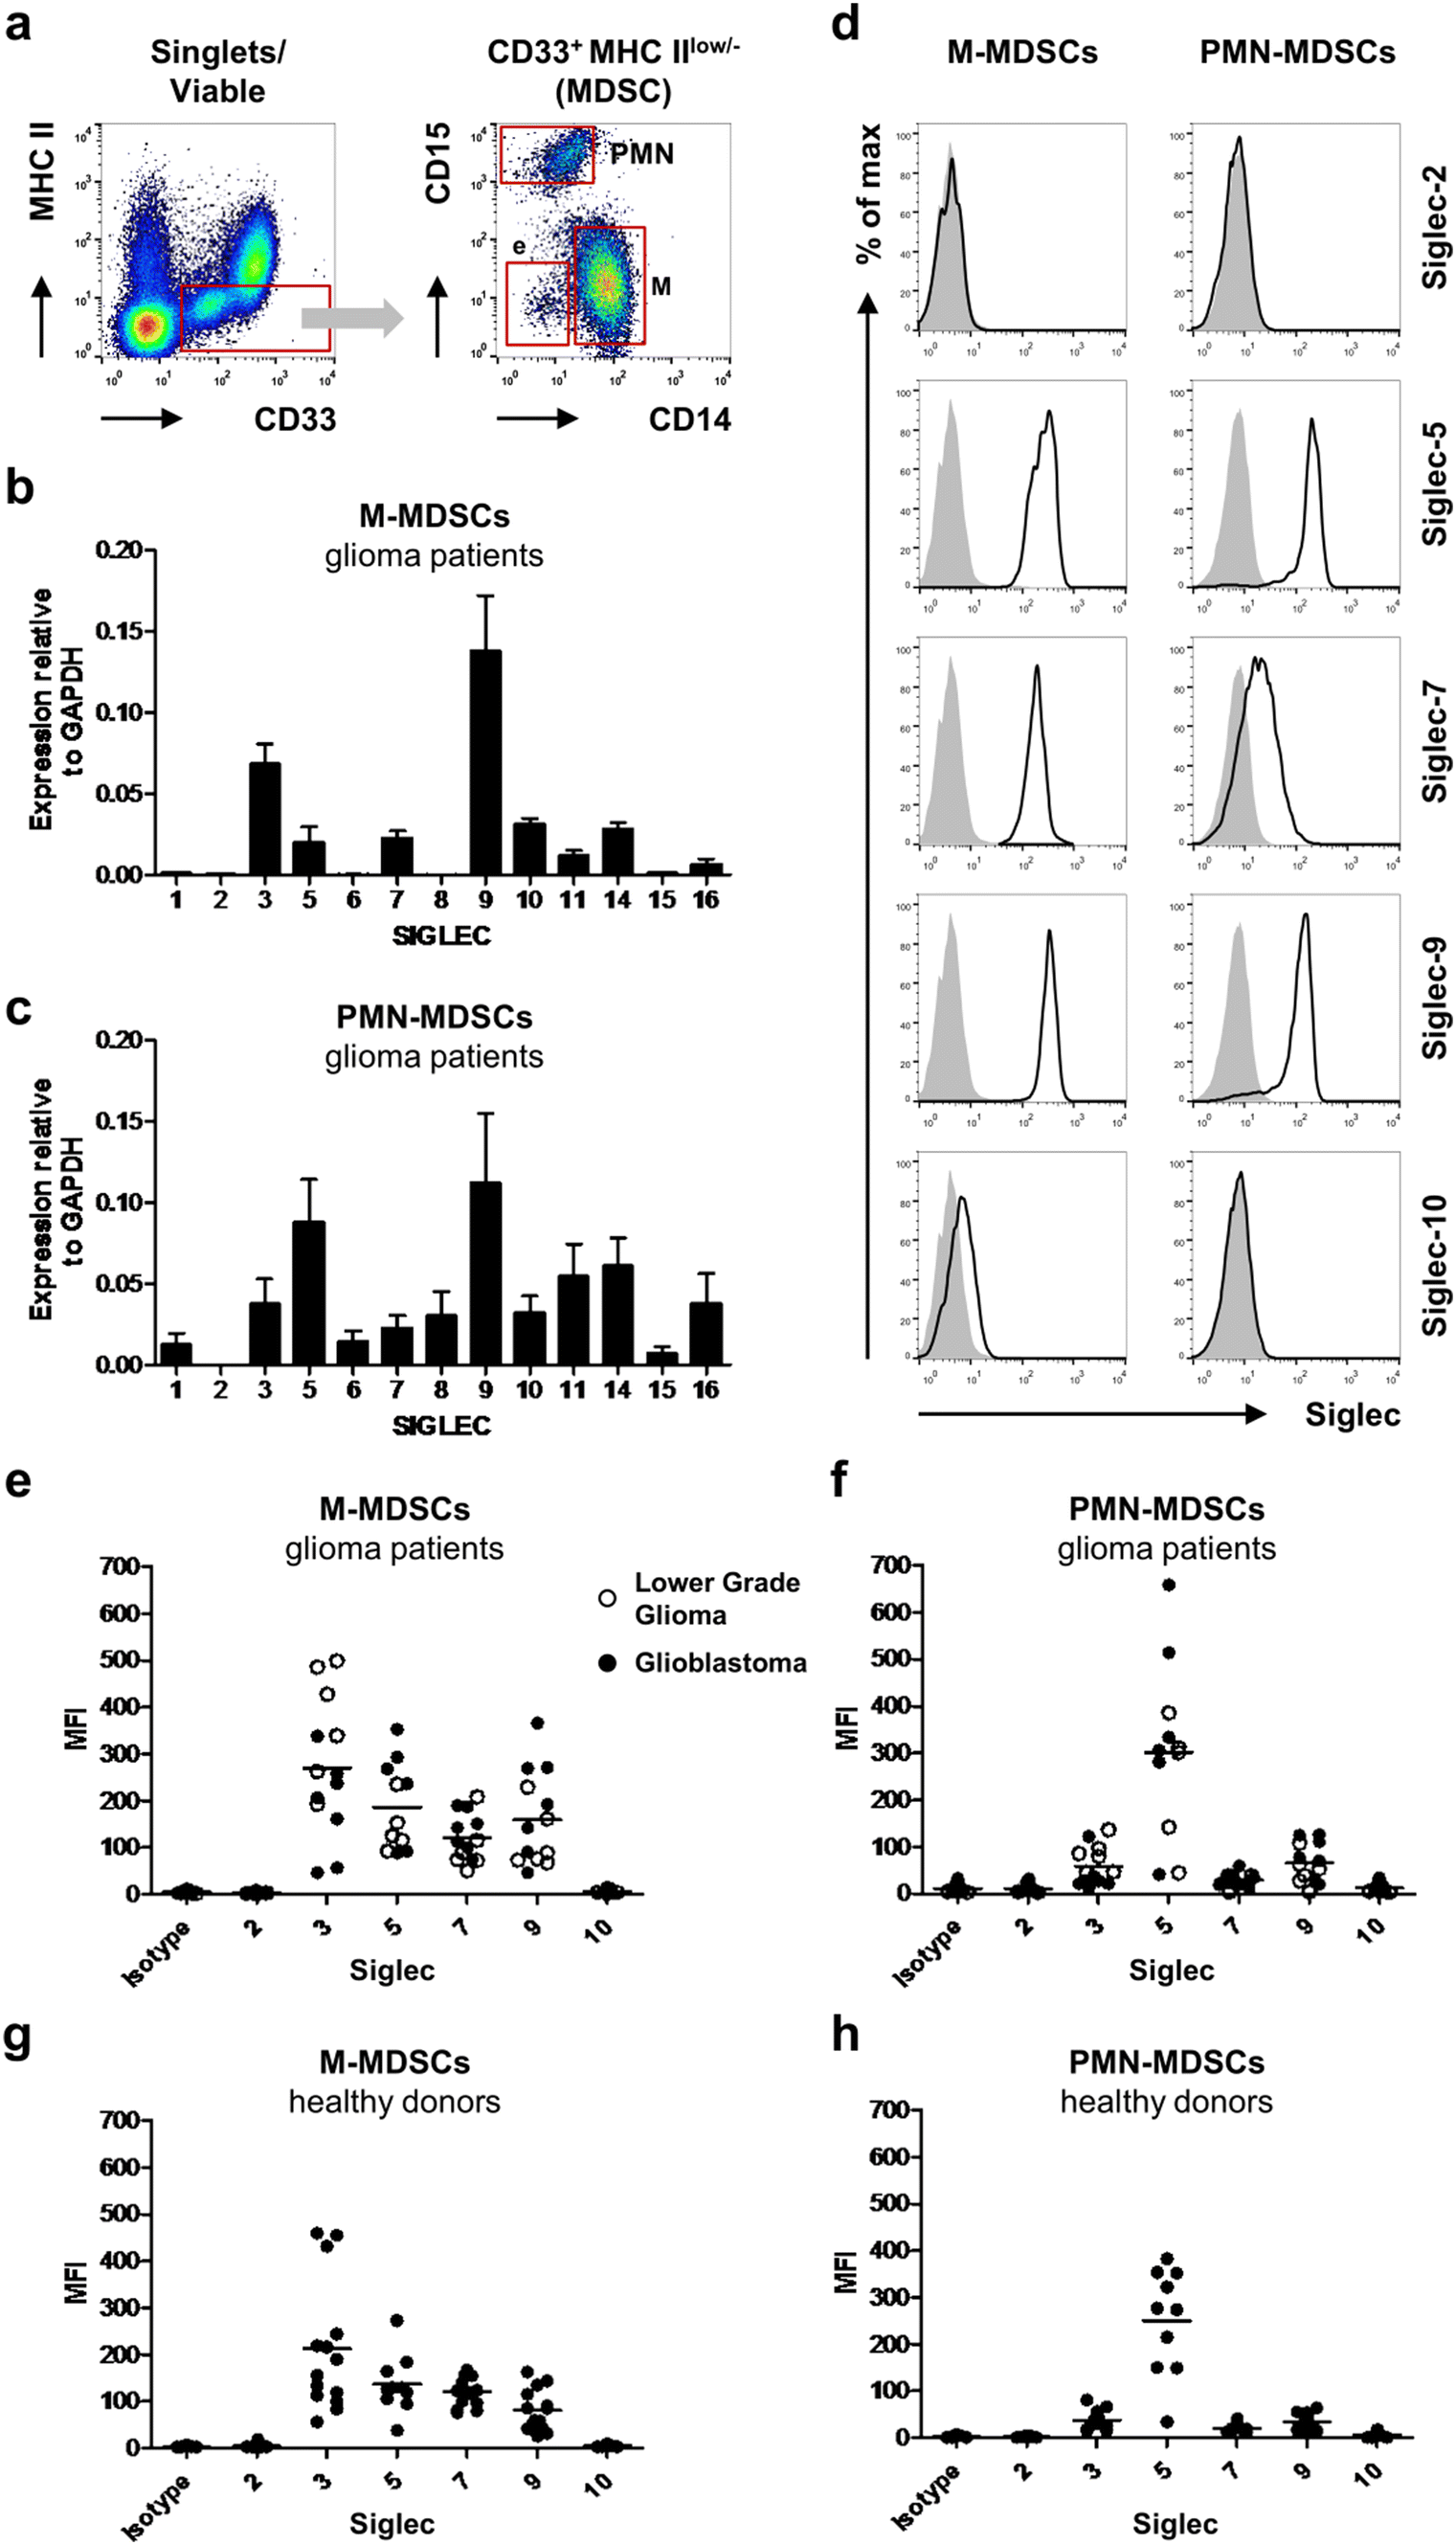 Expression profiling of immune inhibitory Siglecs and their ligands